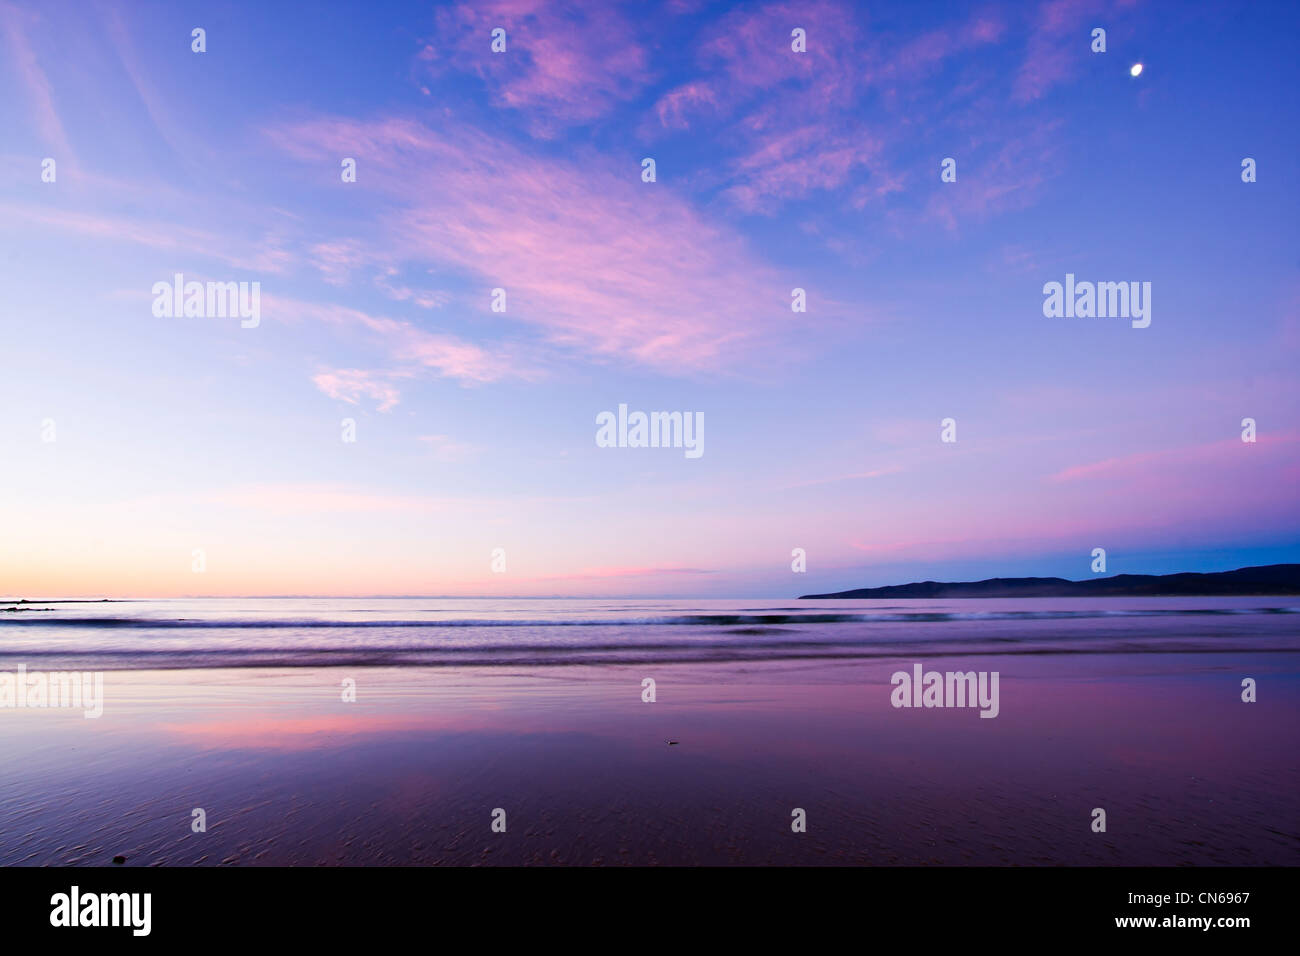 Nightfall colours and reflections on beach after sunset Stock Photo